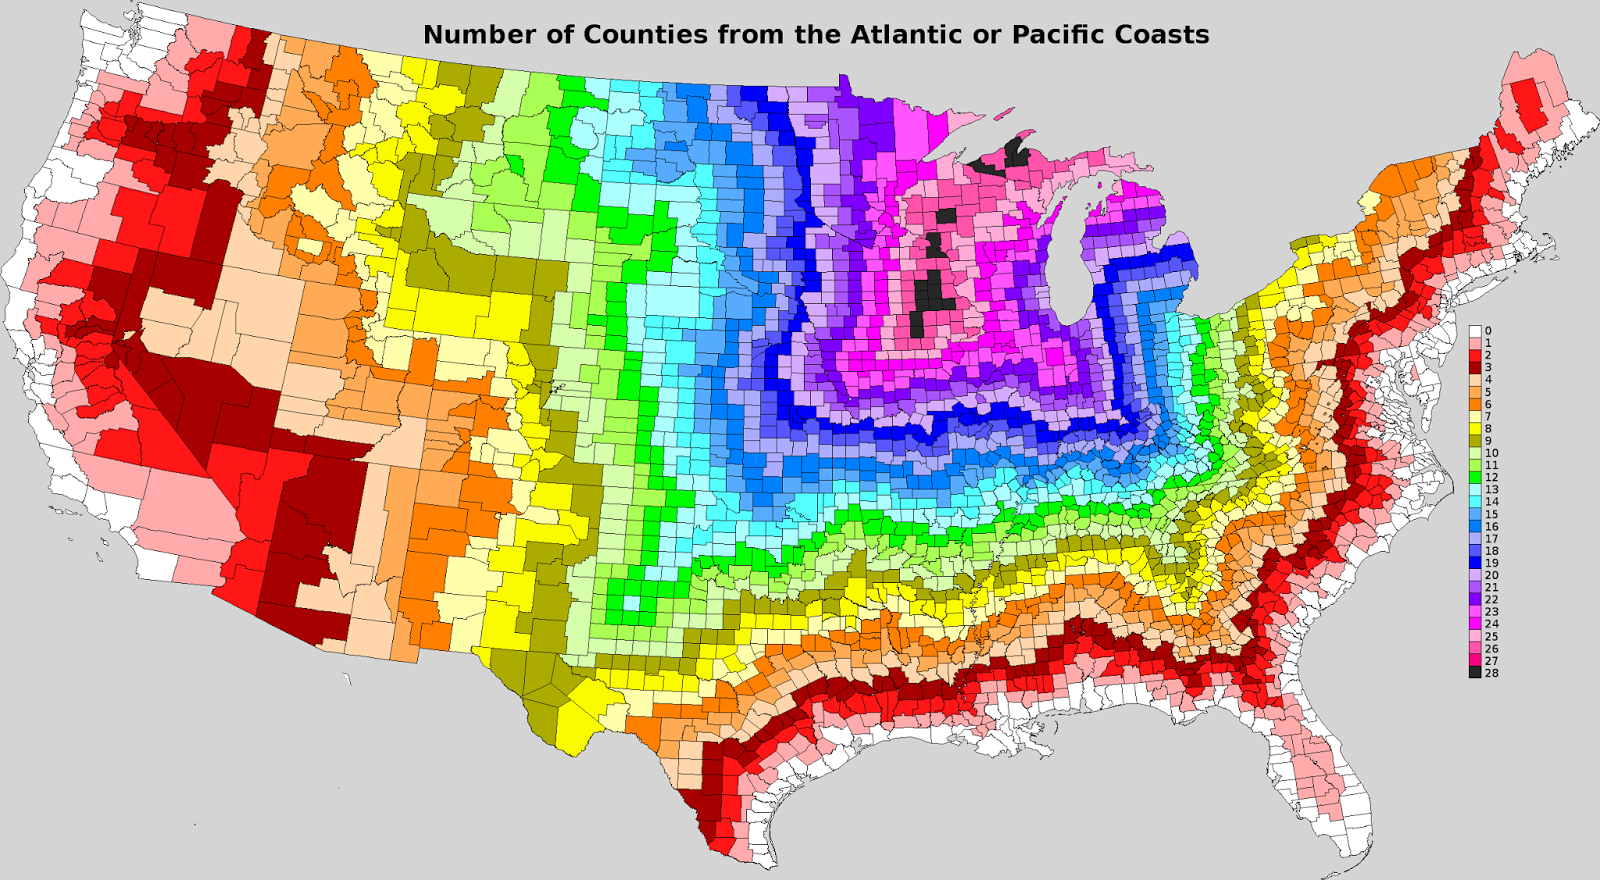 map of the us each county colored by the number of counties from the atlantic or pacific coast